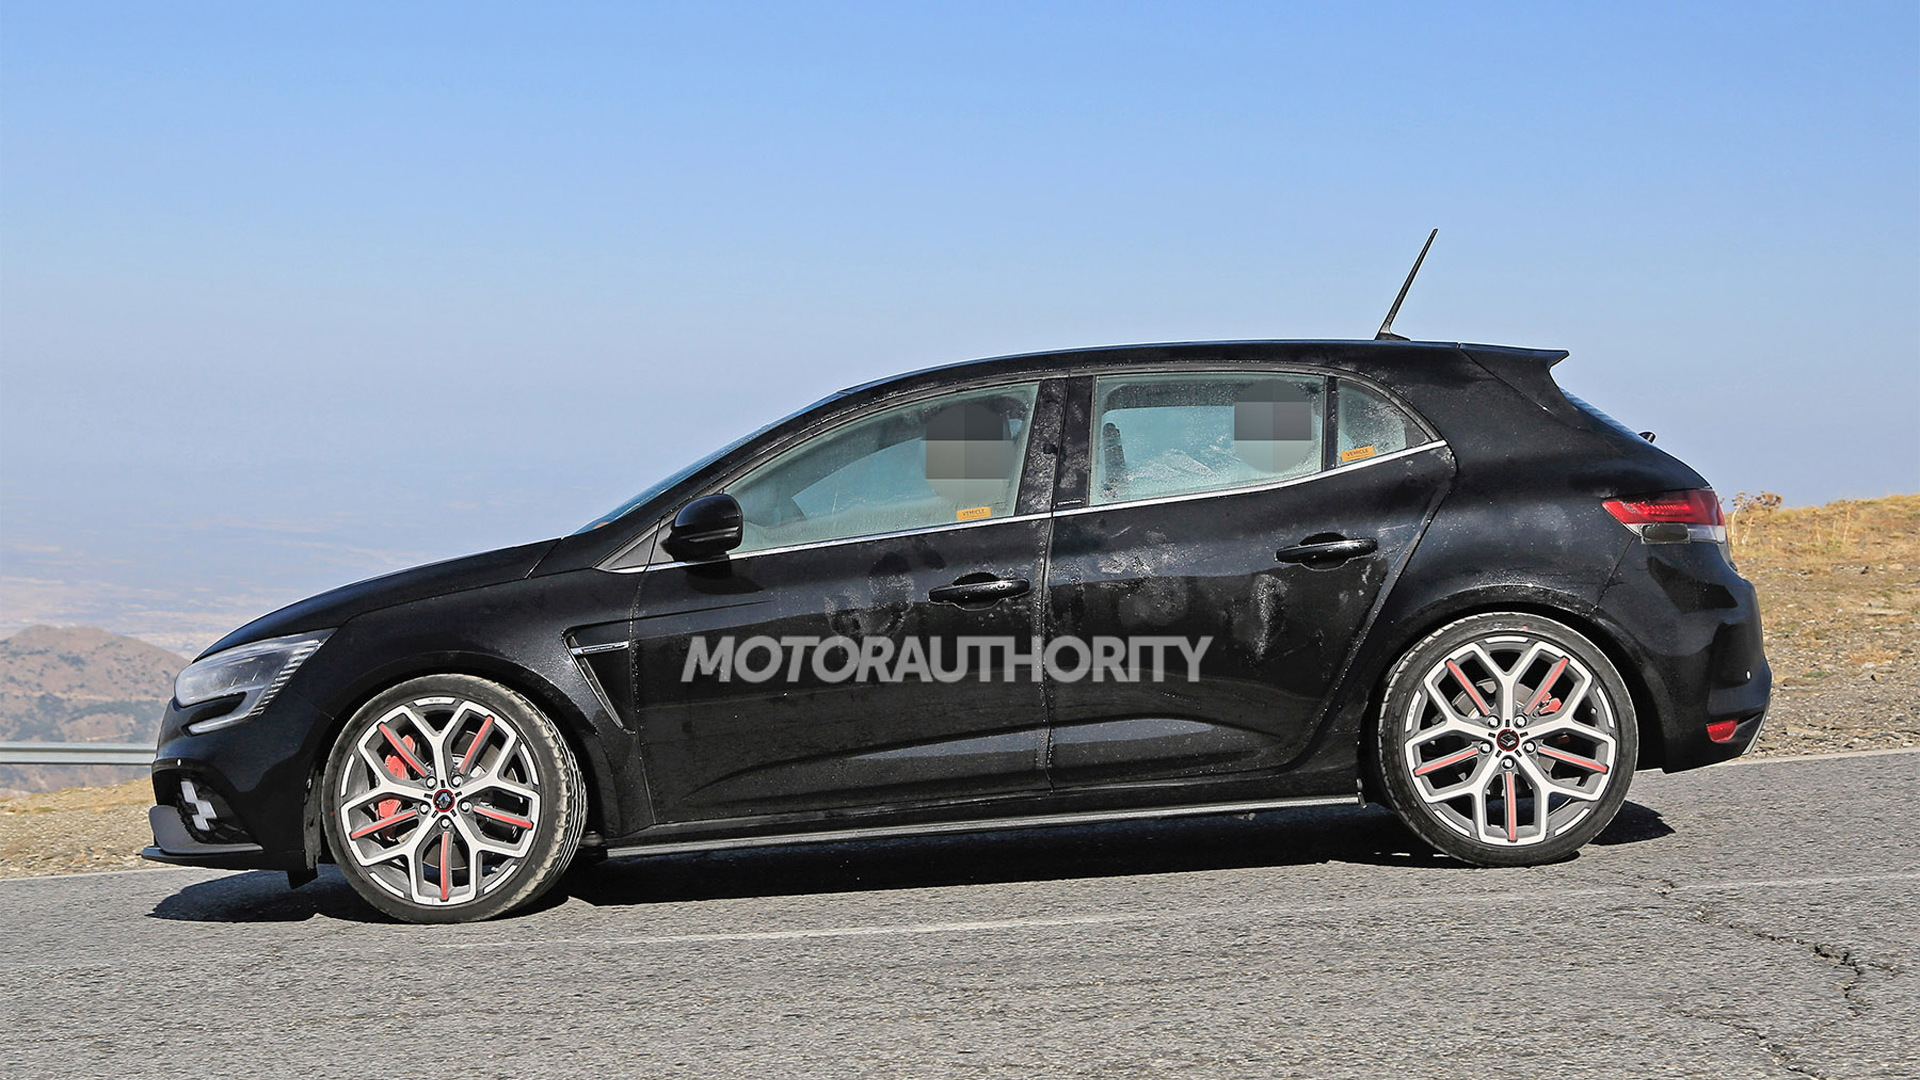 2020 Renault Megane RS facelift spy shots - Photo credit: S. Baldauf/SB-Medien